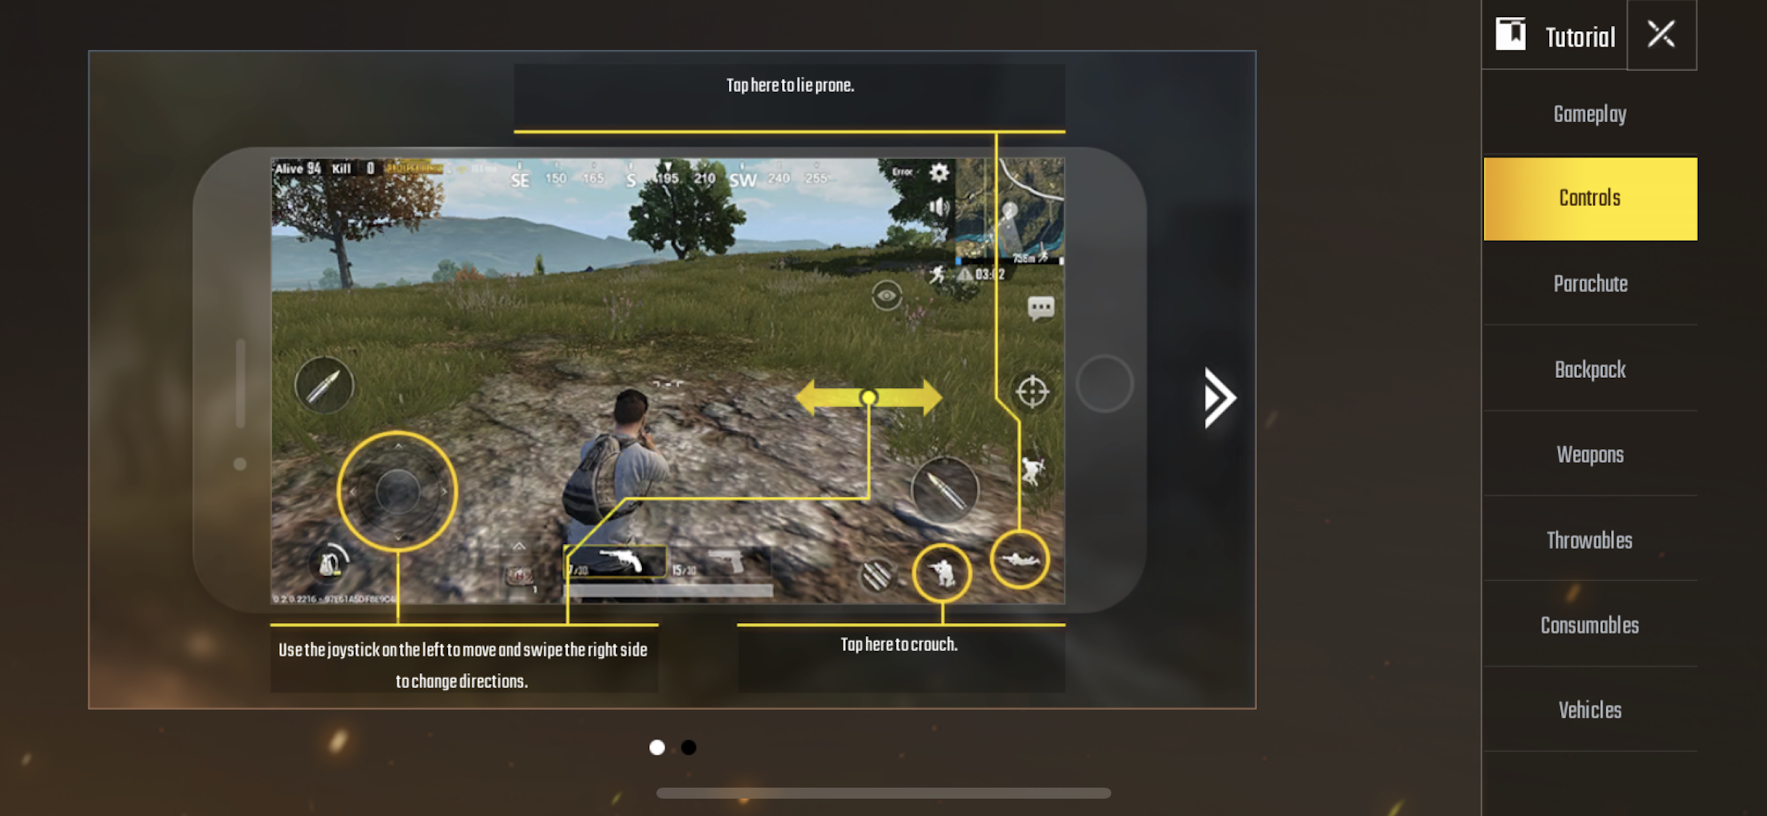 PUBG Mobile is live on Android, iOS - Polygon